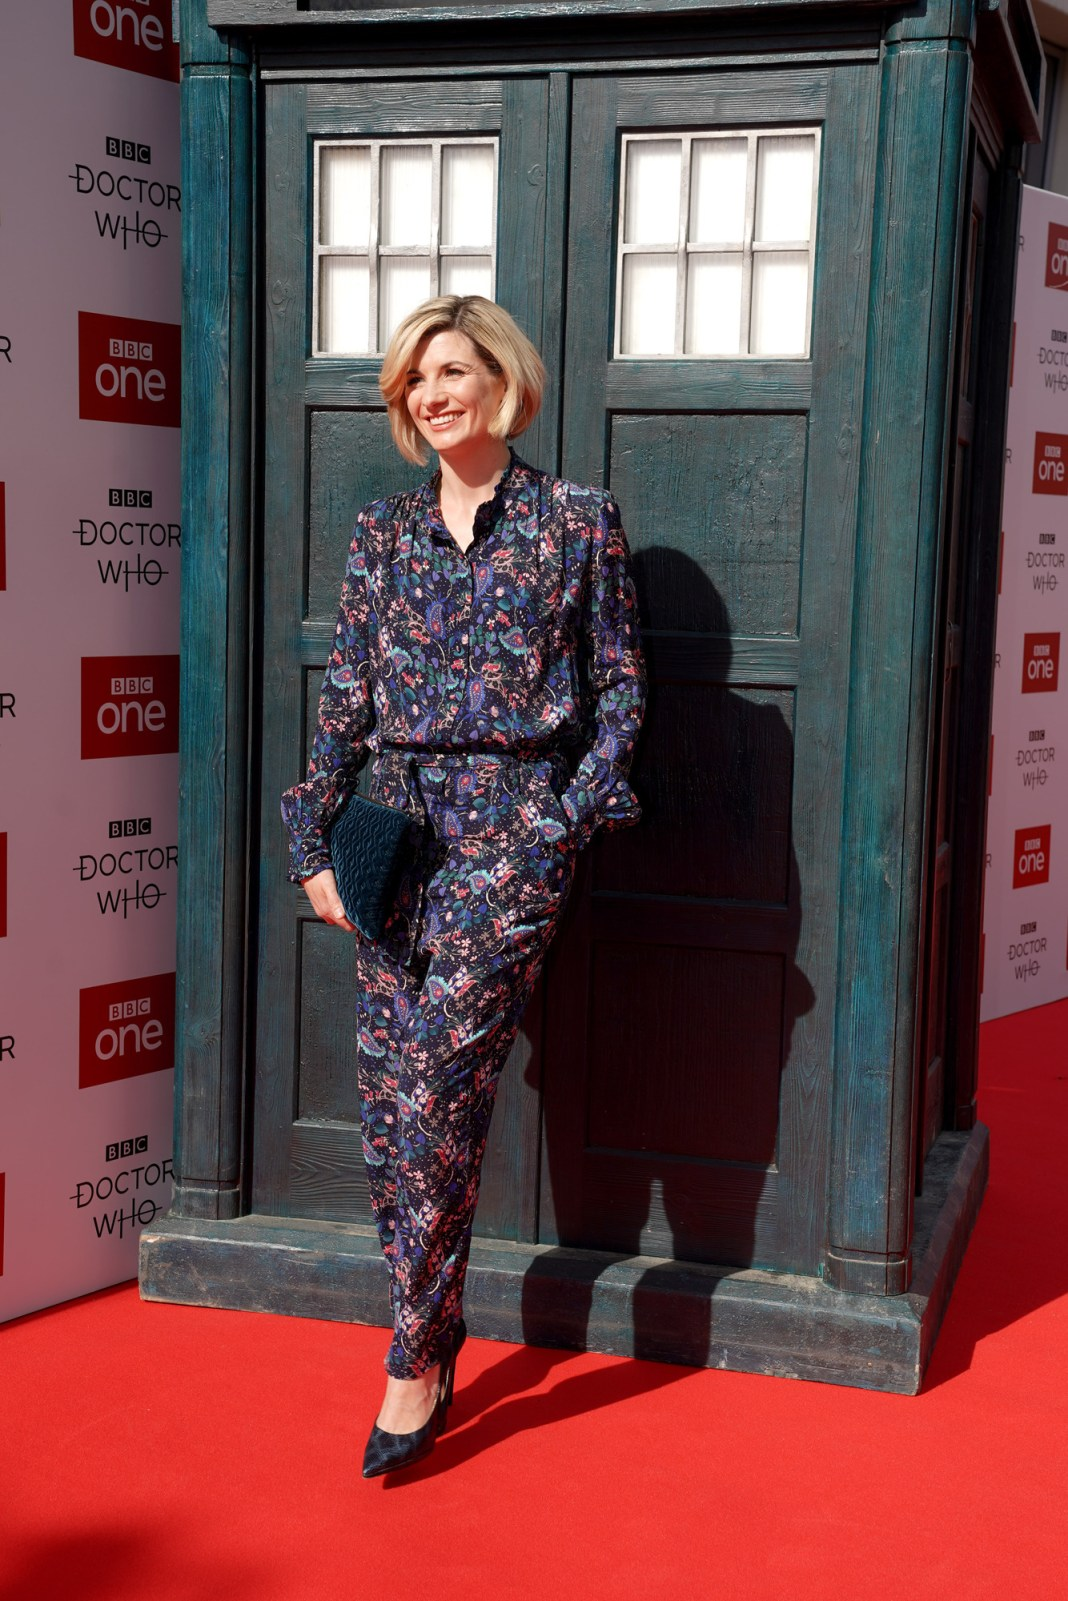 Doctor Who - Red Carpet Launch The Doctor (JODIE WHITTAKER) - (C) BBC - Photographer: Ben Blackall